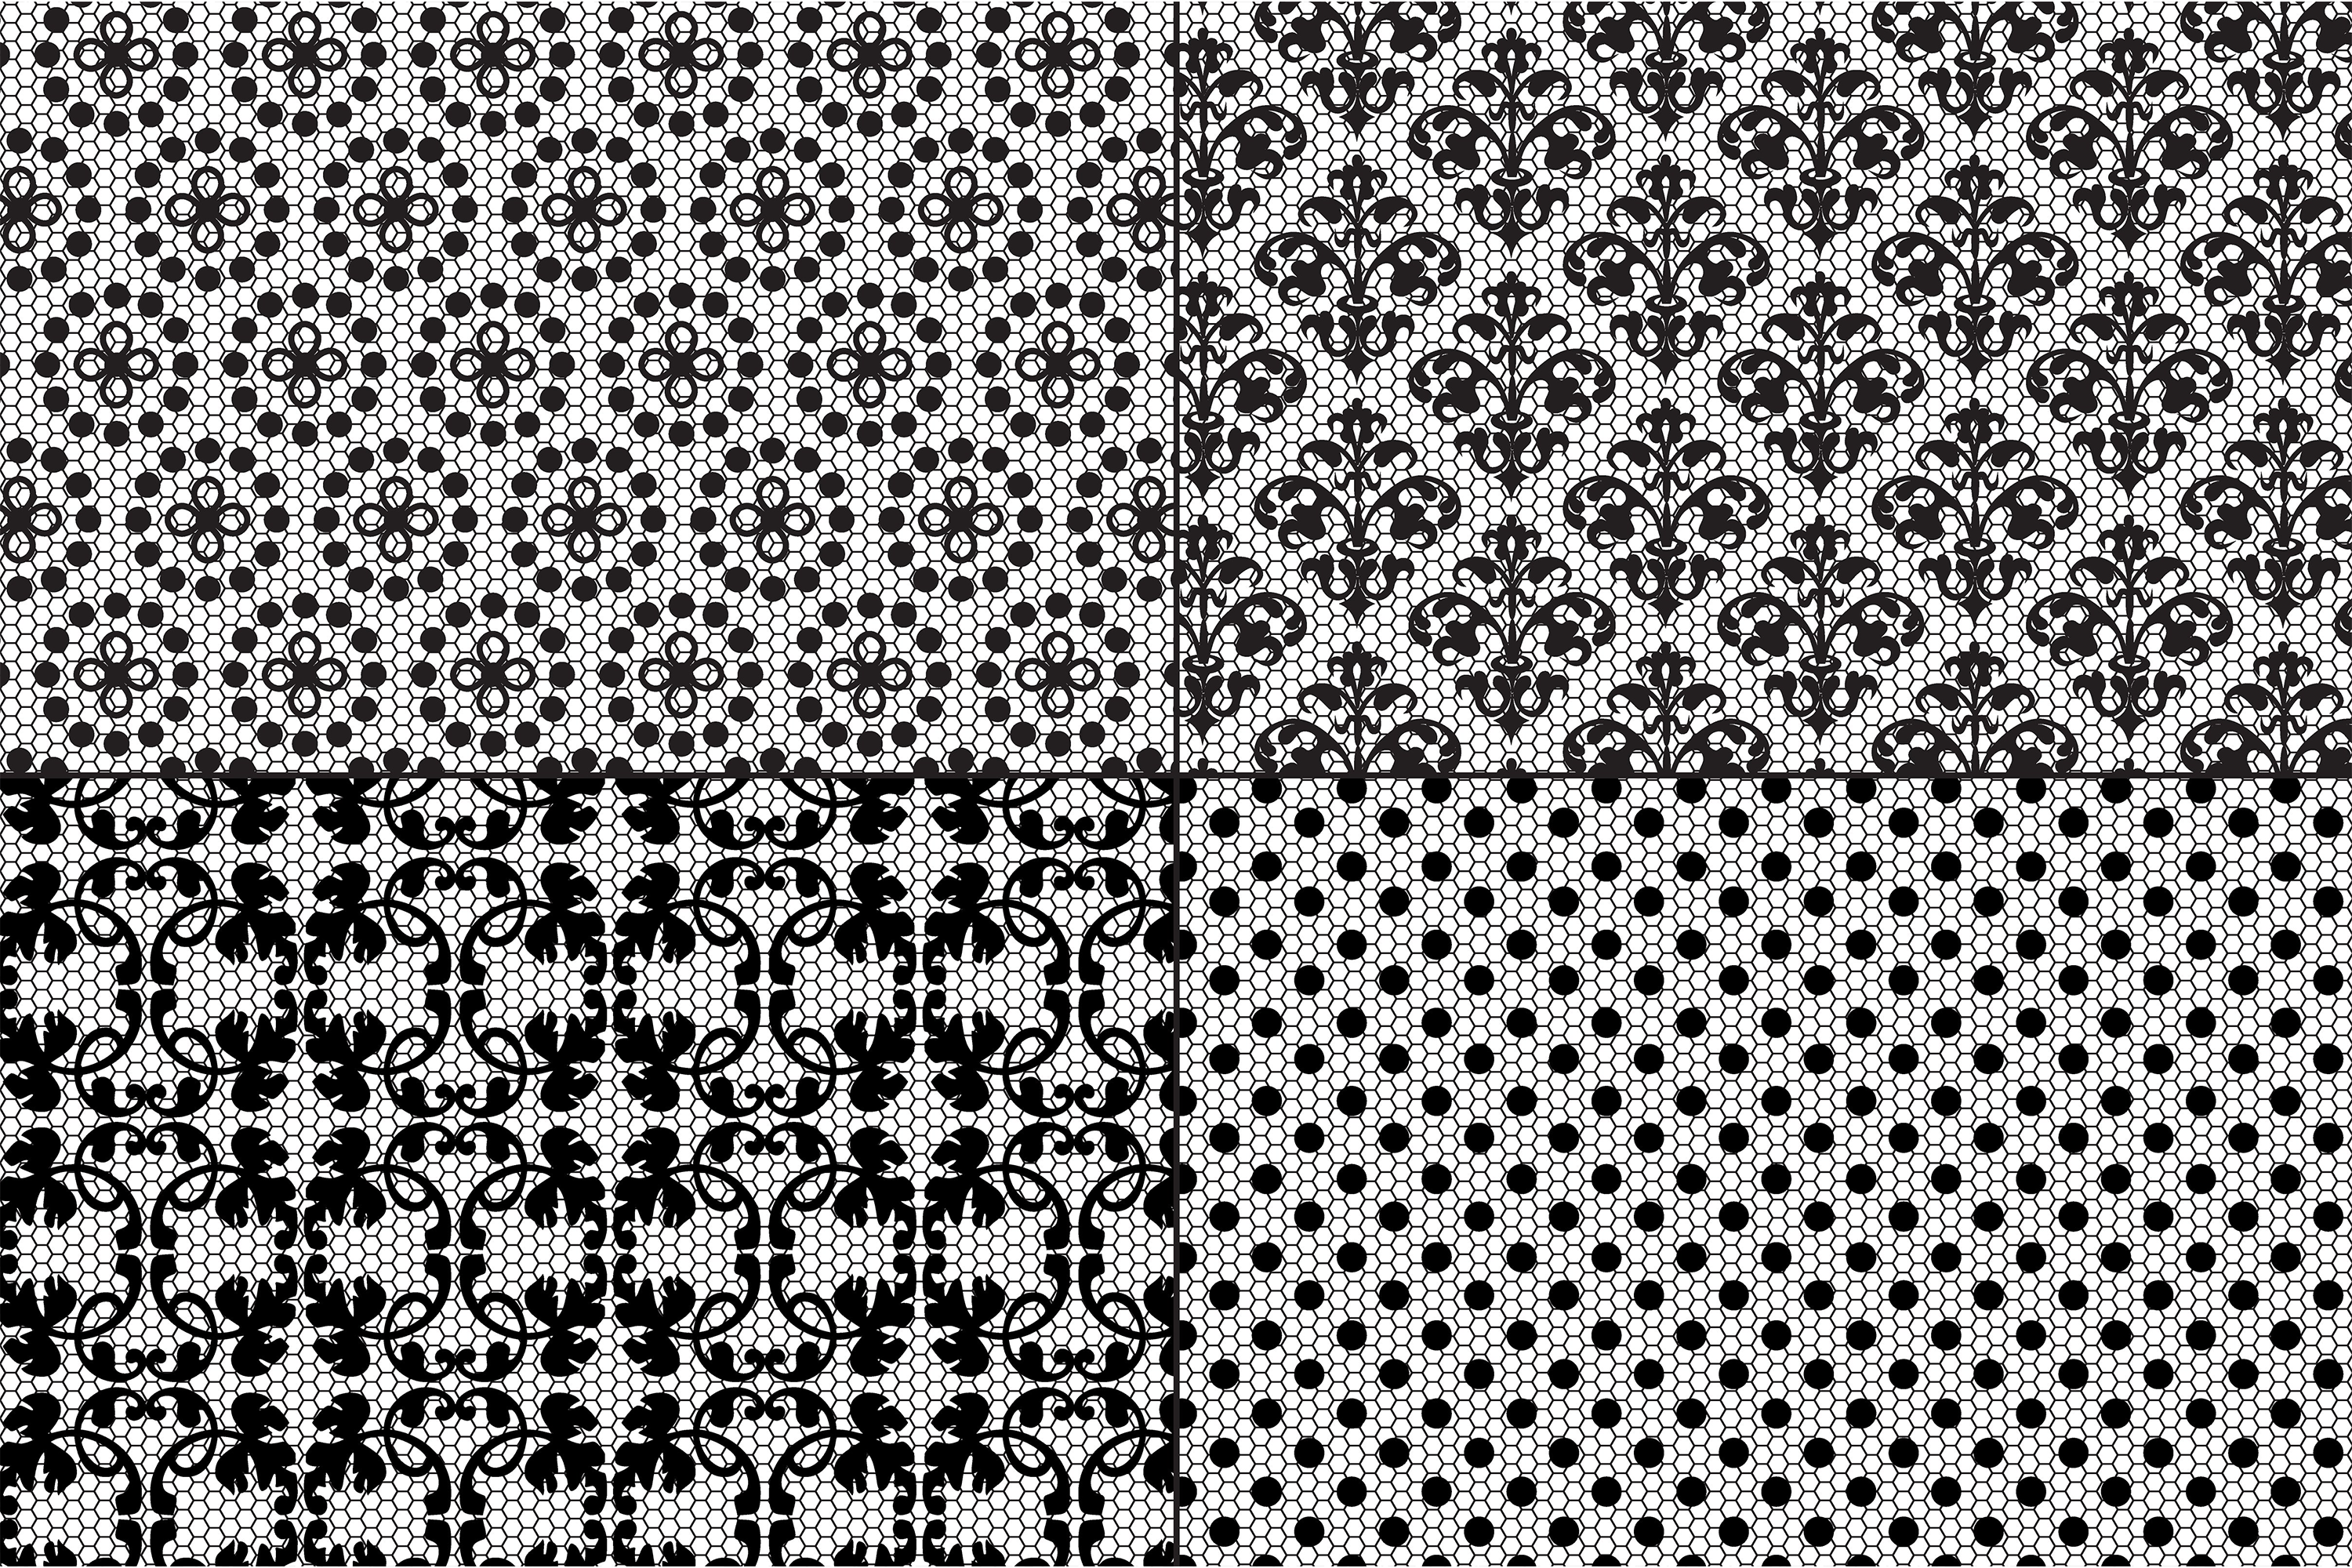 Black Lace Patterns example image 2